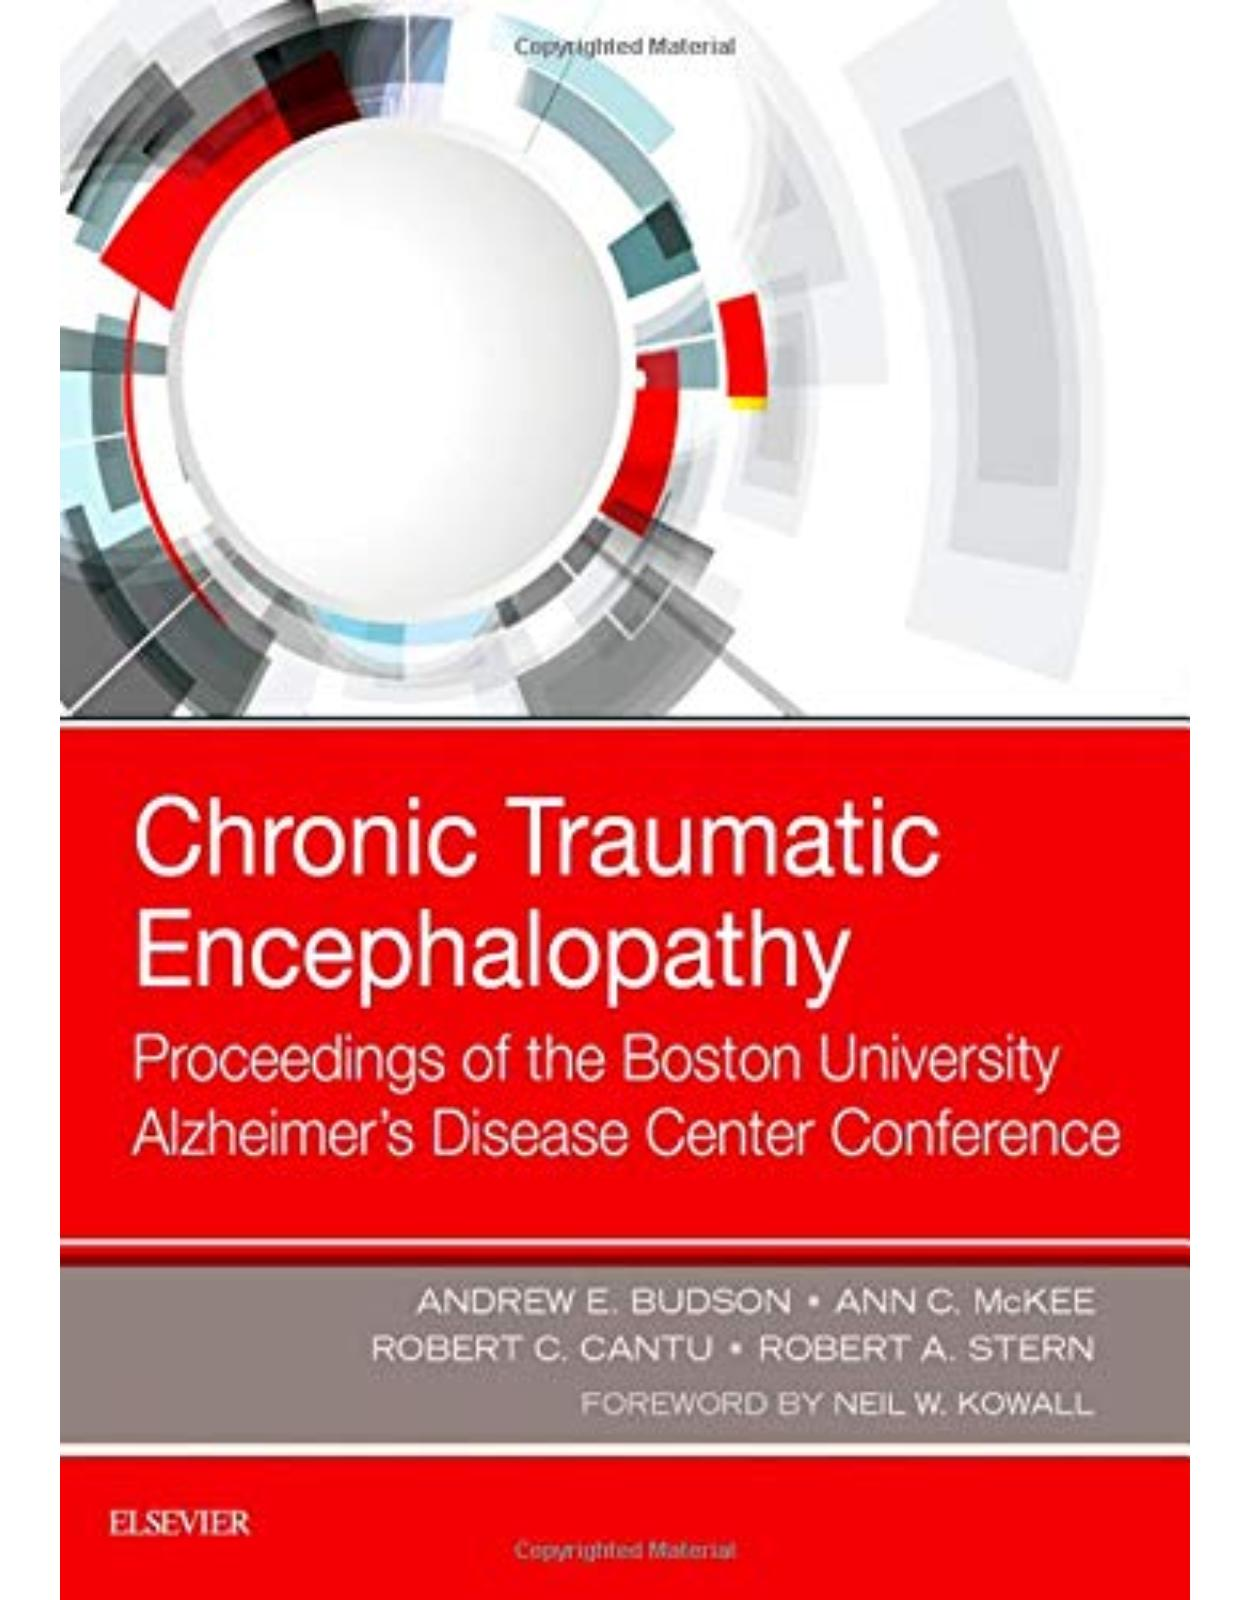 Chronic Traumatic Encephalopathy, Proceedings of the Boston University Alzheimer�s Disease Center Conference